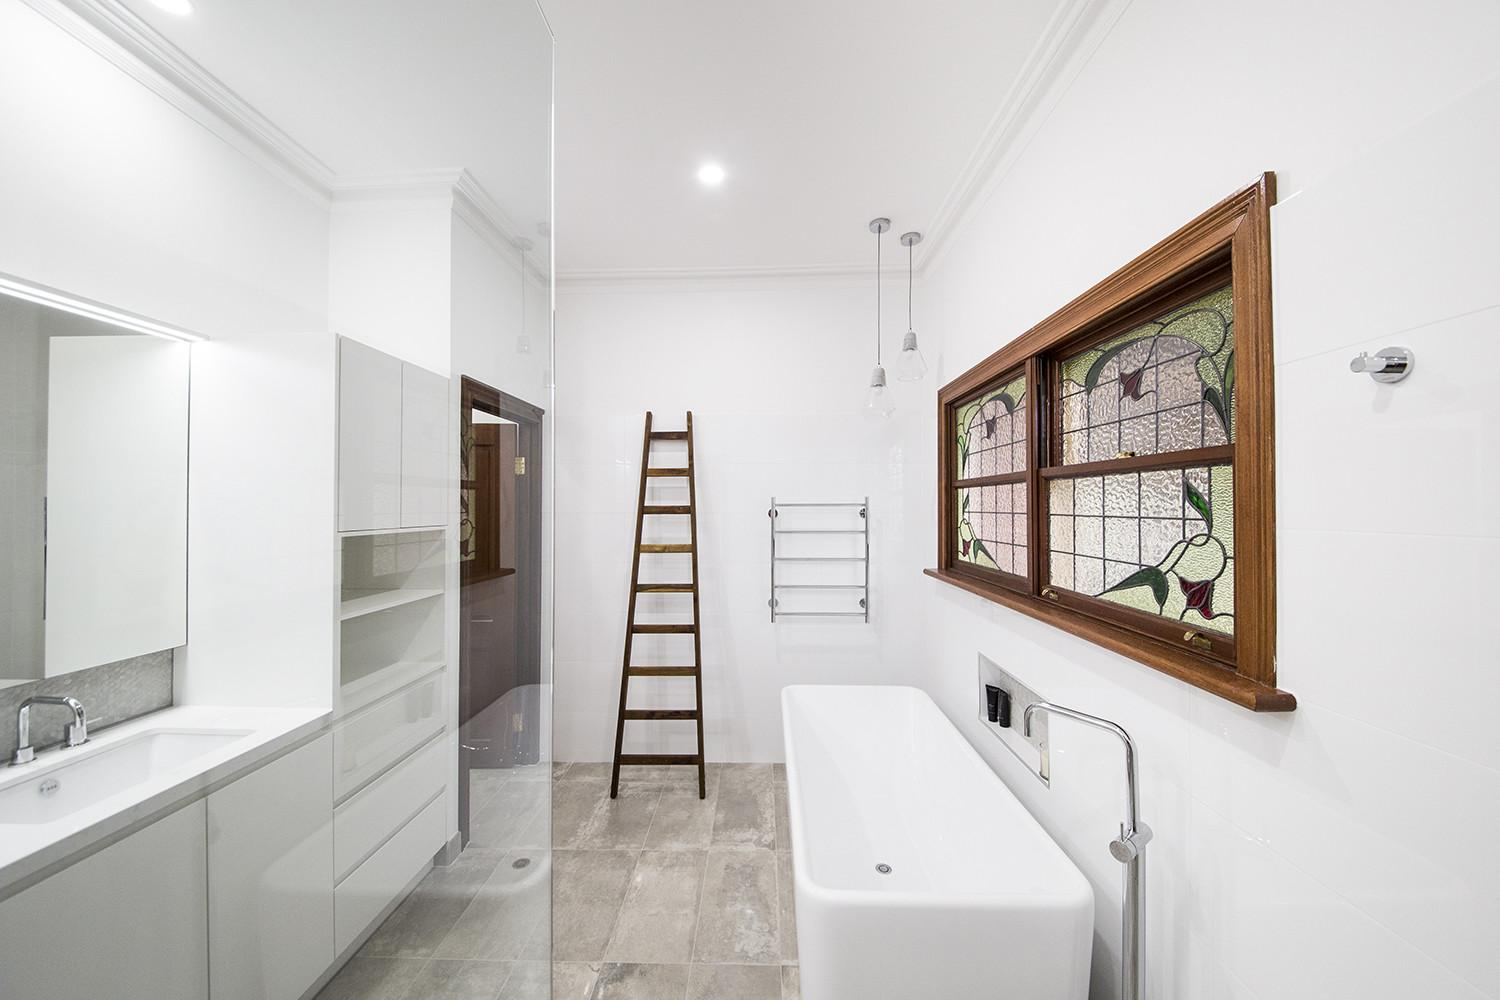 Yarrambat Bathroom Renovation Interior Designers Melbourne